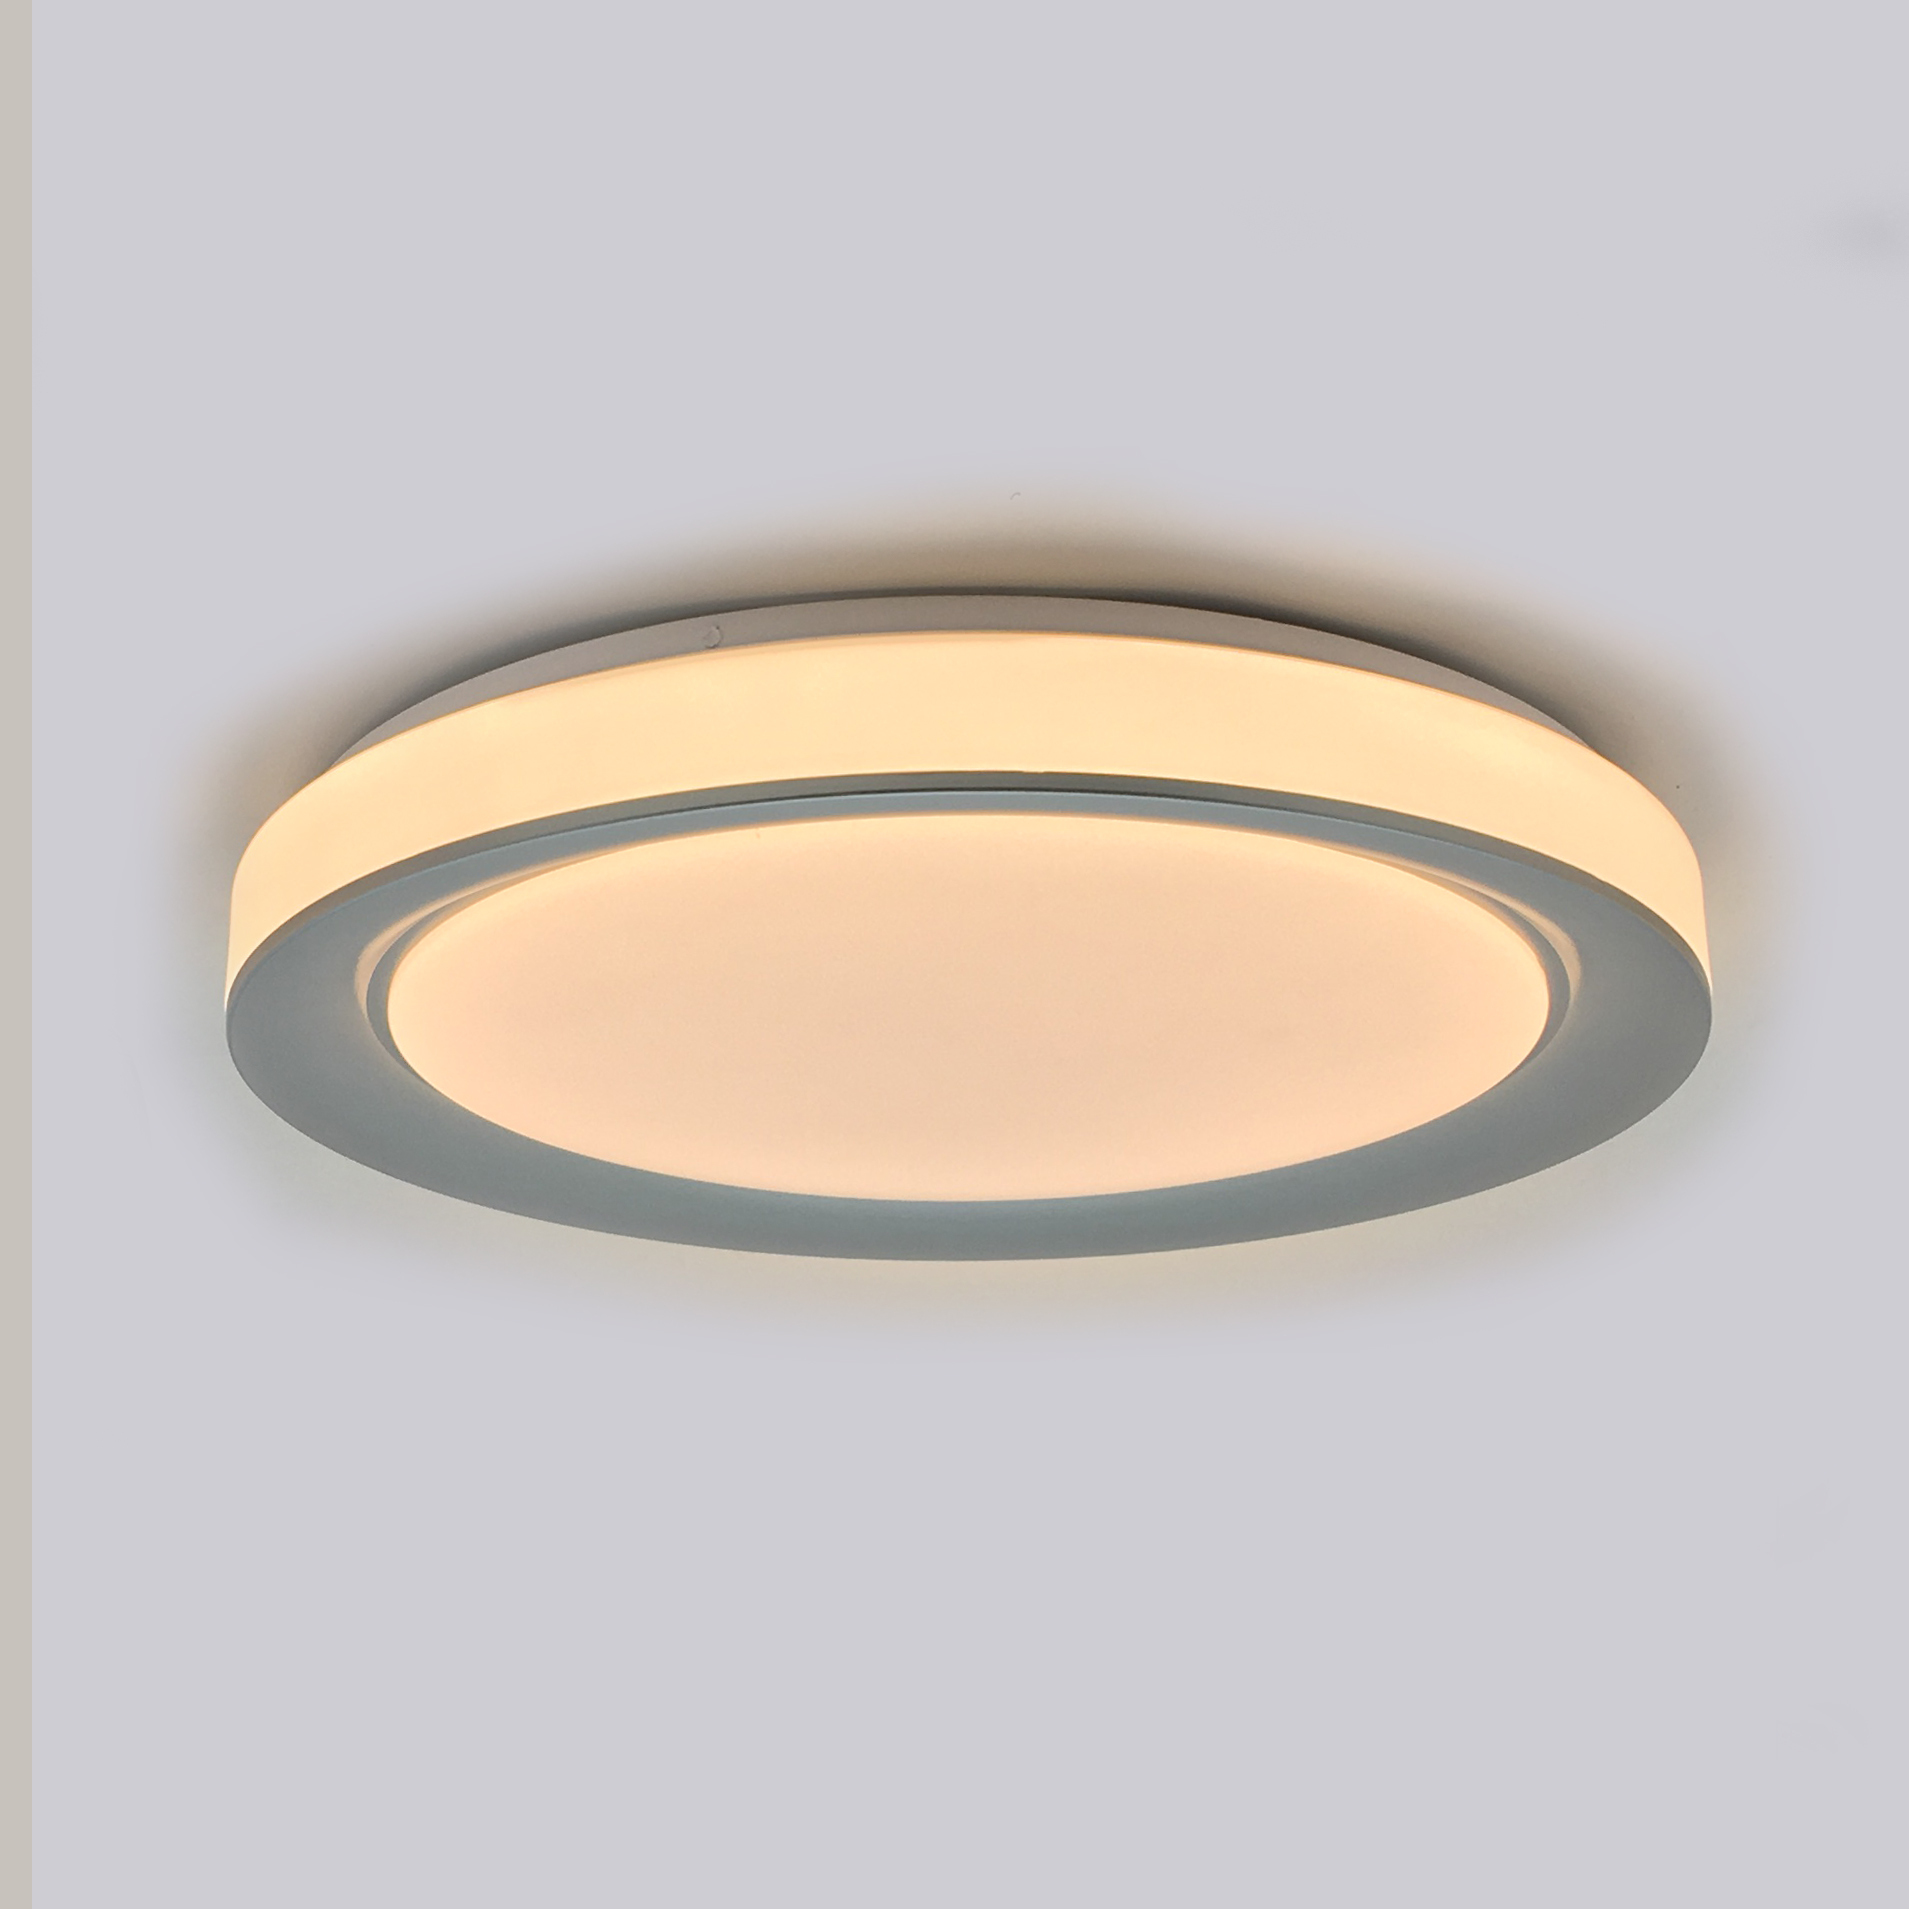 2019 new product full moon style light bedroom ceiling light